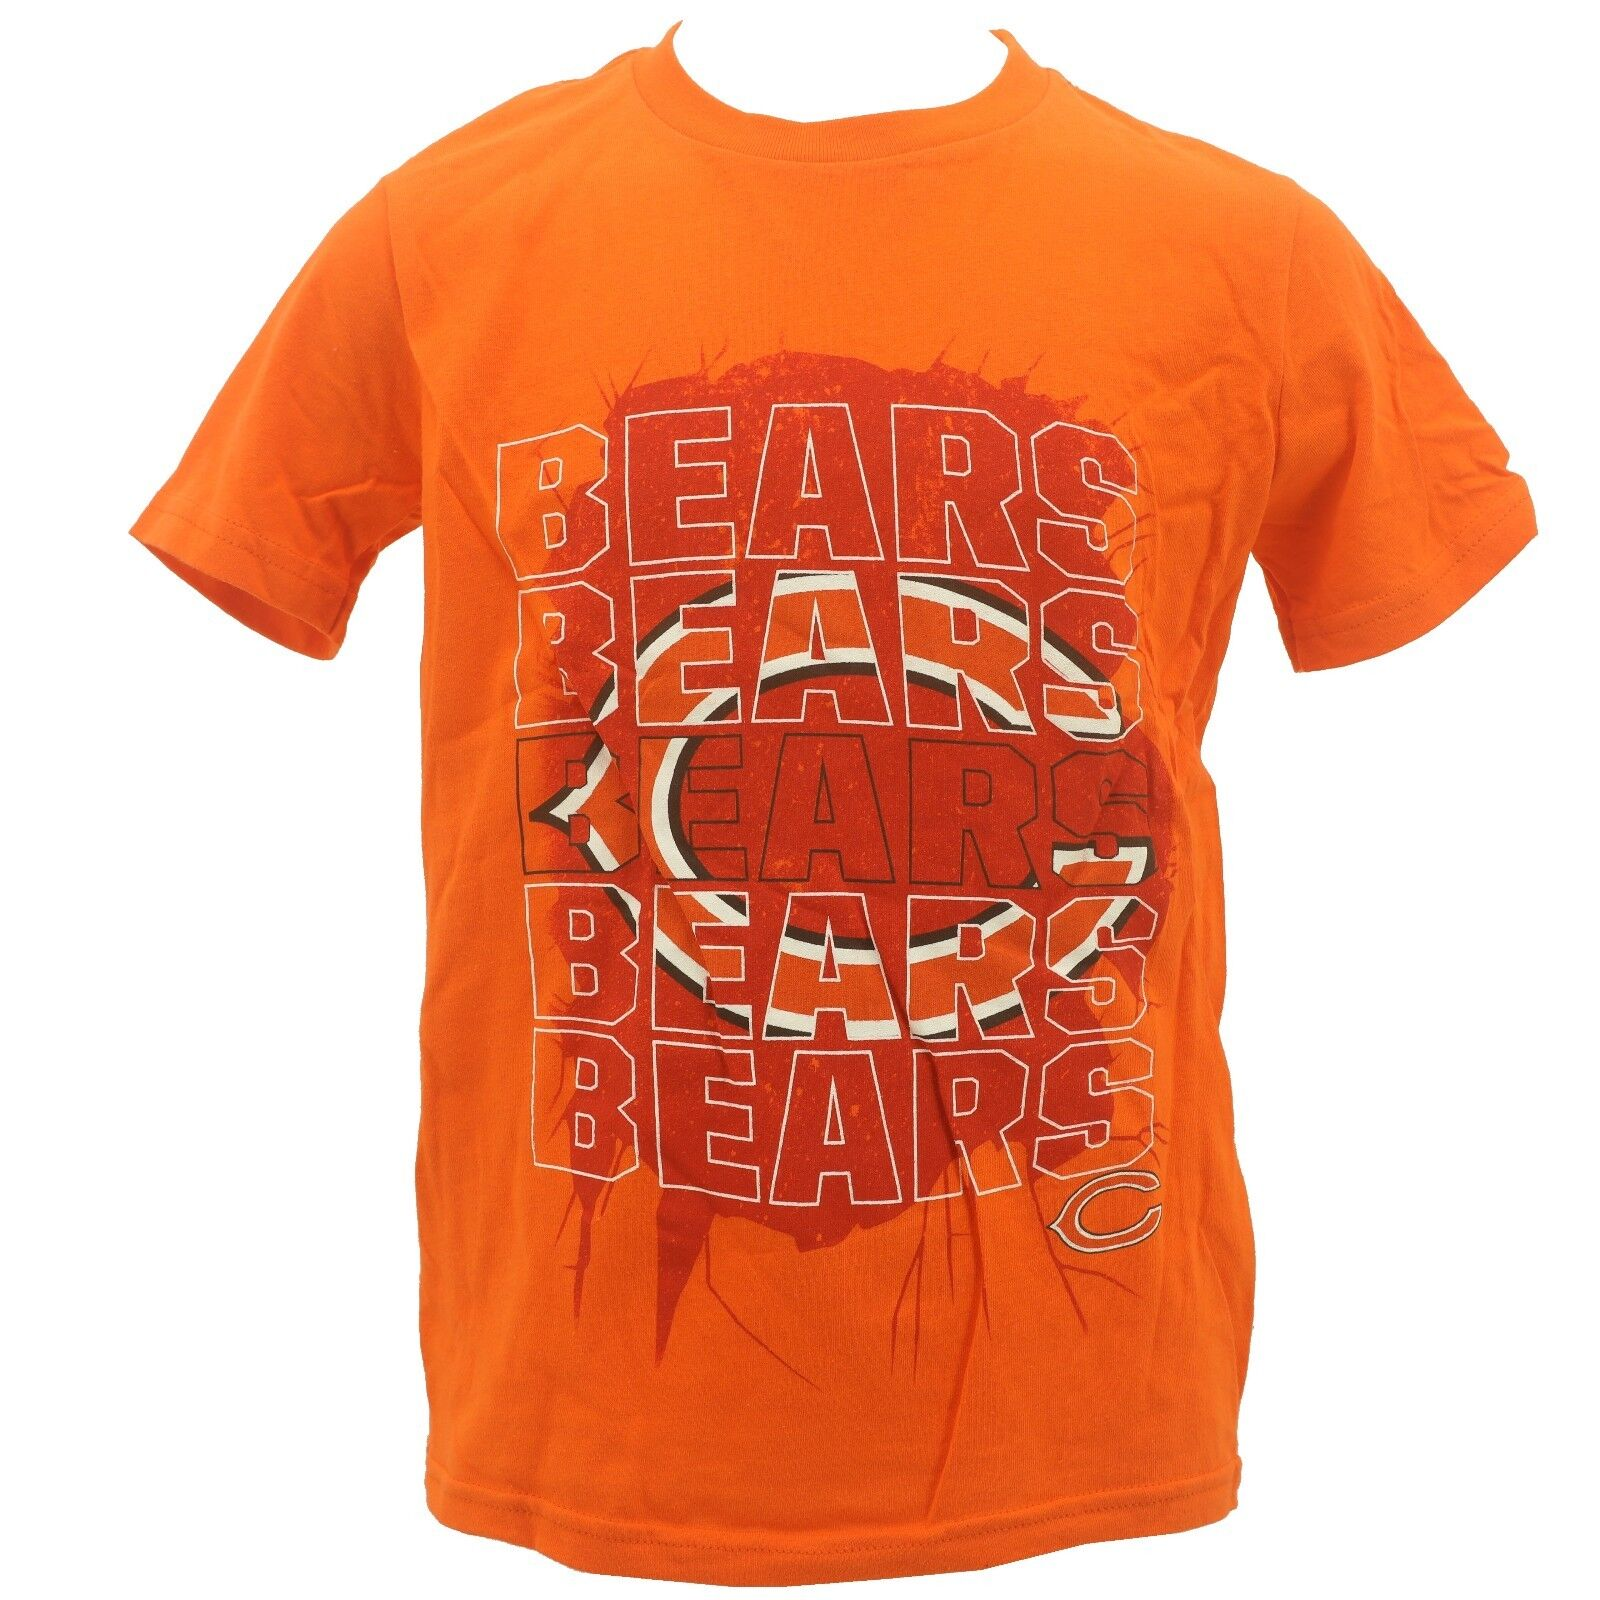 9dbc520a Details about NFL Chicago Bears Kids Youth Size Team Apparel Official  T-Shirt New With Tags